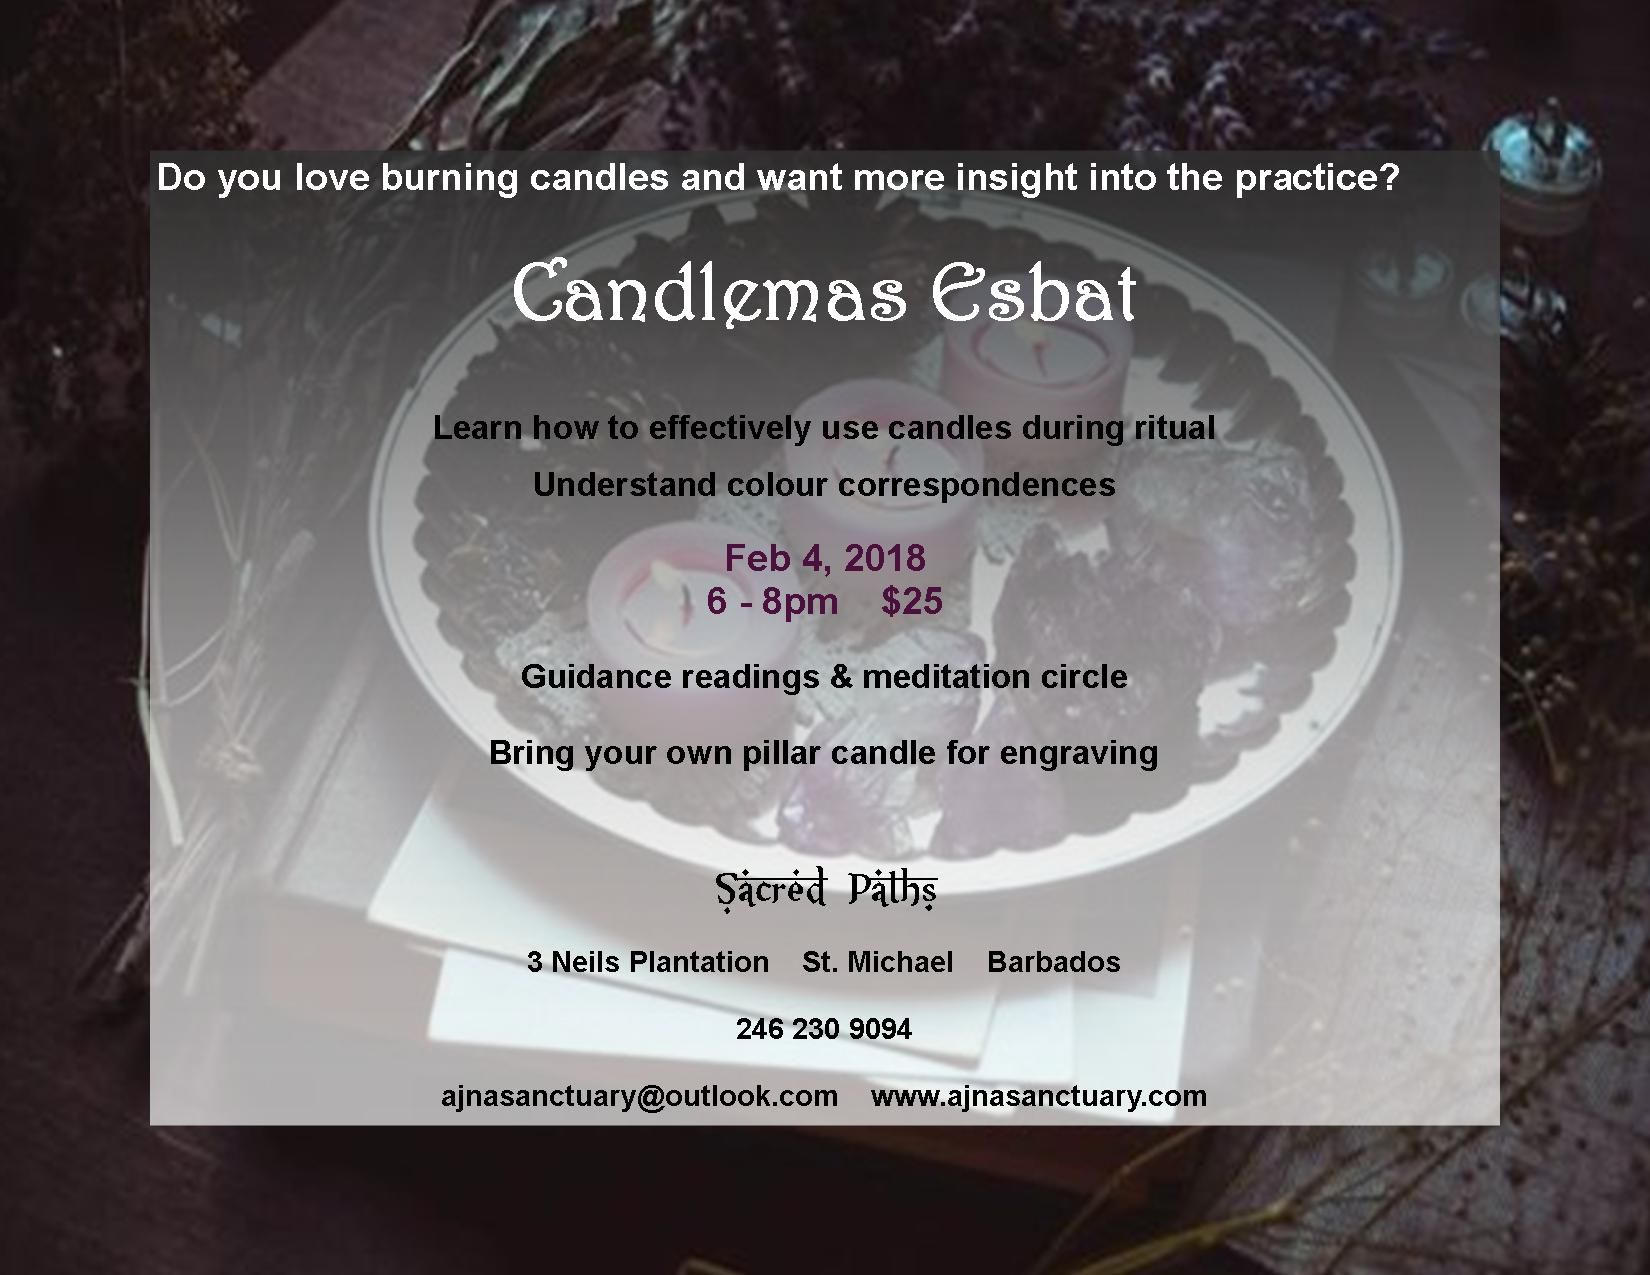 Learn The Elements Of Candle Magick During The Candlemas